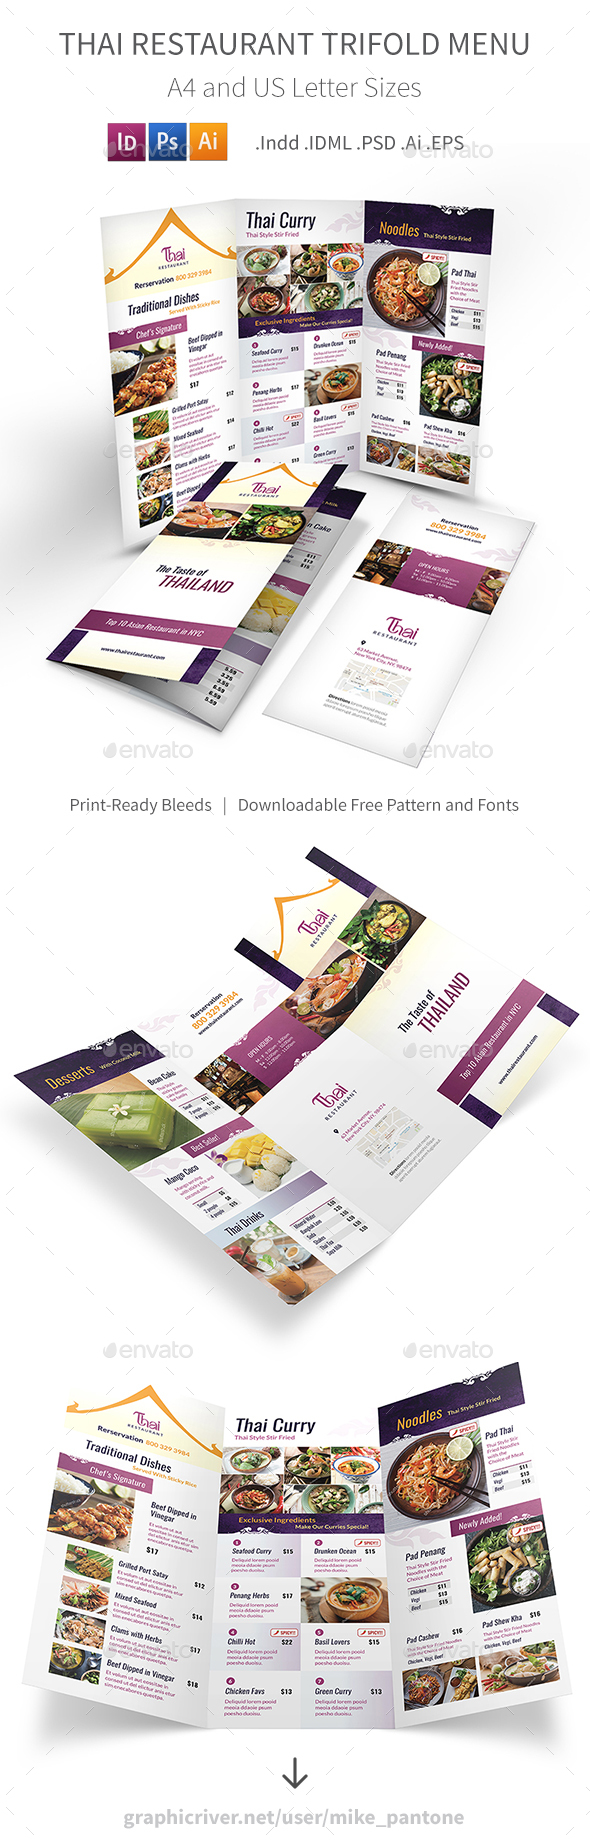 Thai Restaurant Trifold Menu 4